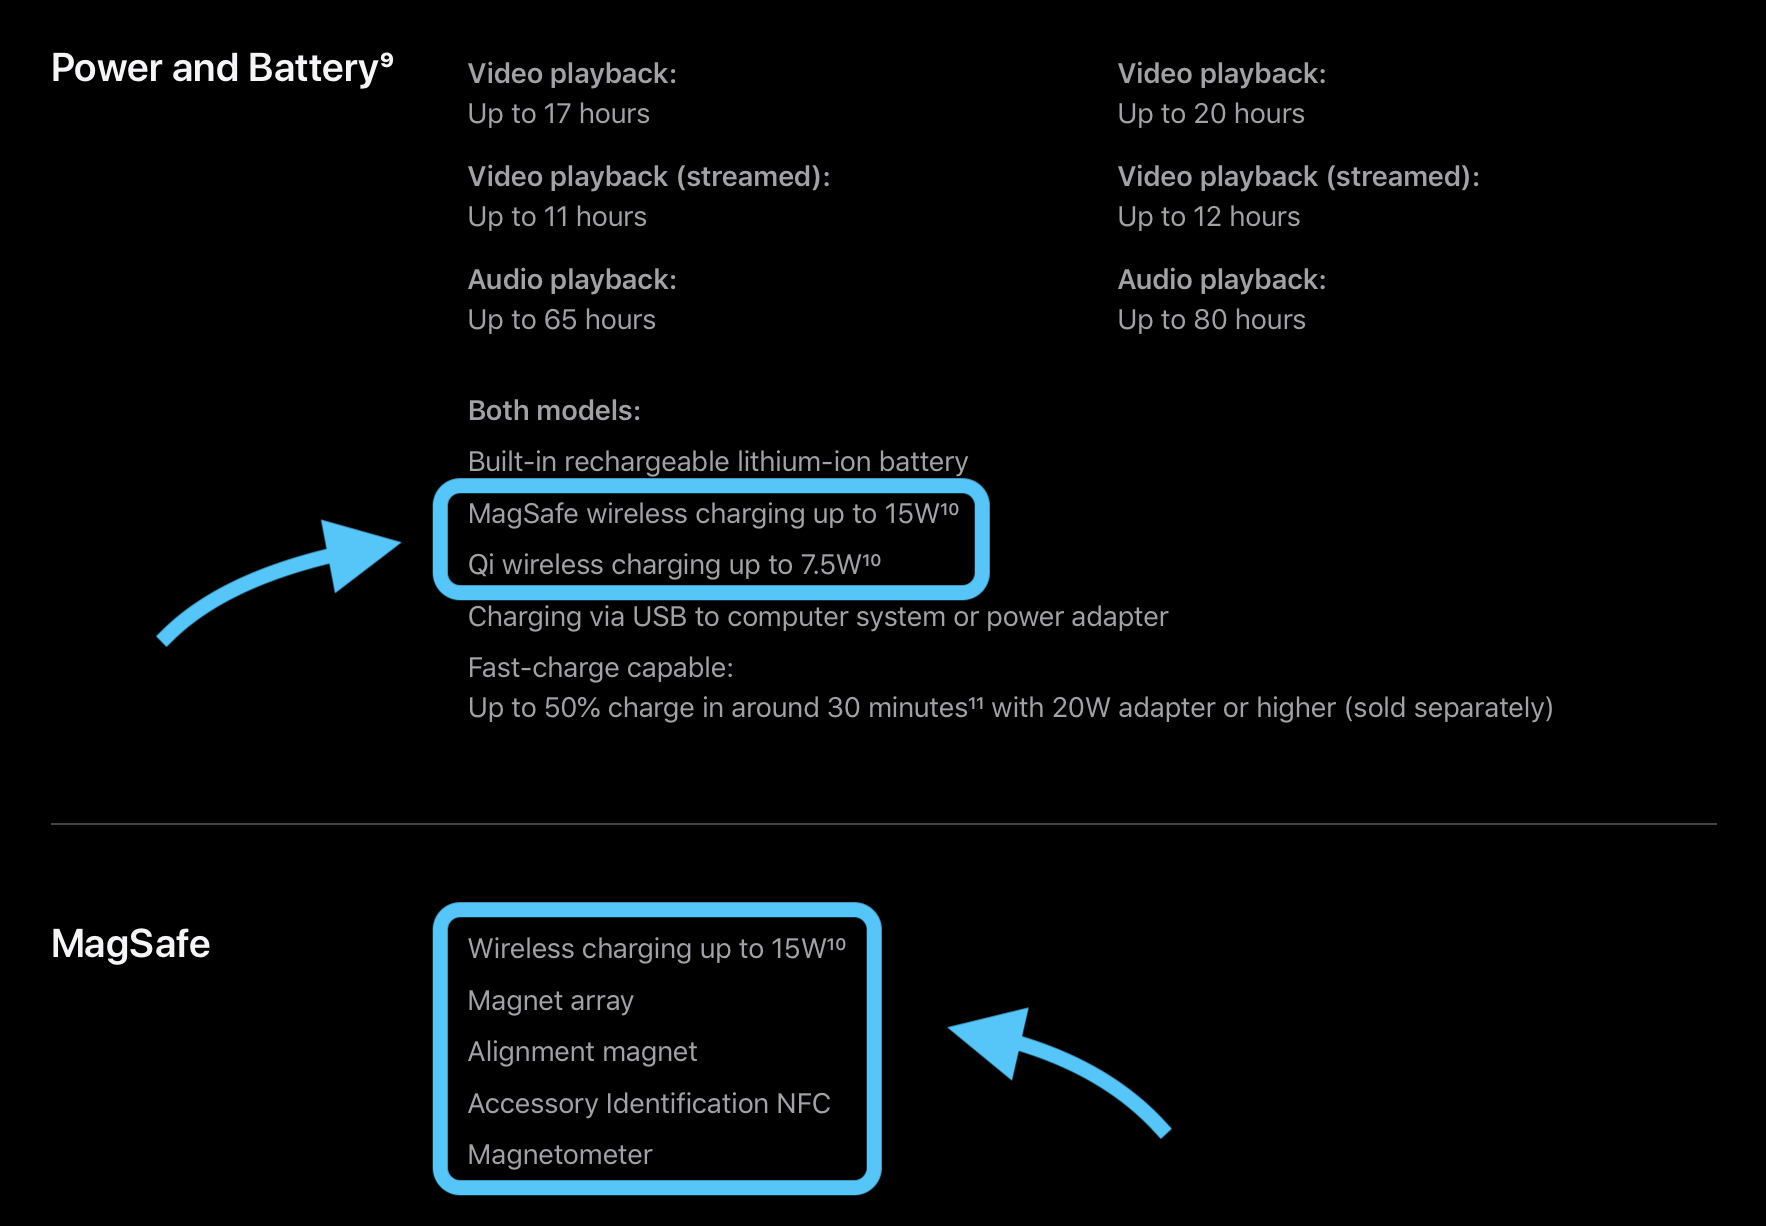 MagSafe wireless charging details